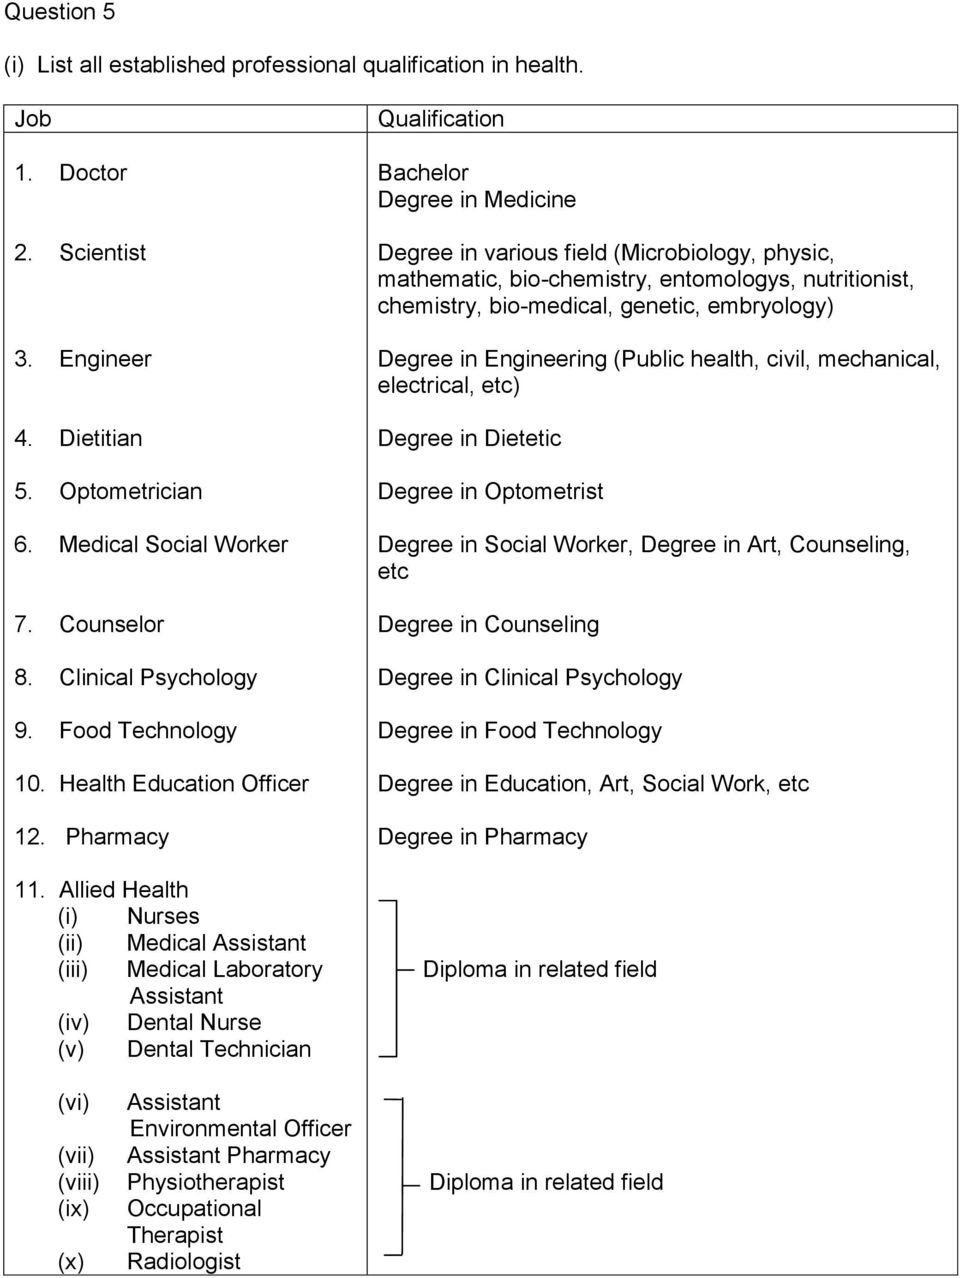 Allied Health Nurses Medical Medical Laboratory (iv) Dental Nurse (v) Dental Technician Qualification Bachelor Degree in Medicine Degree in various field (Microbiology, physic, mathematic,